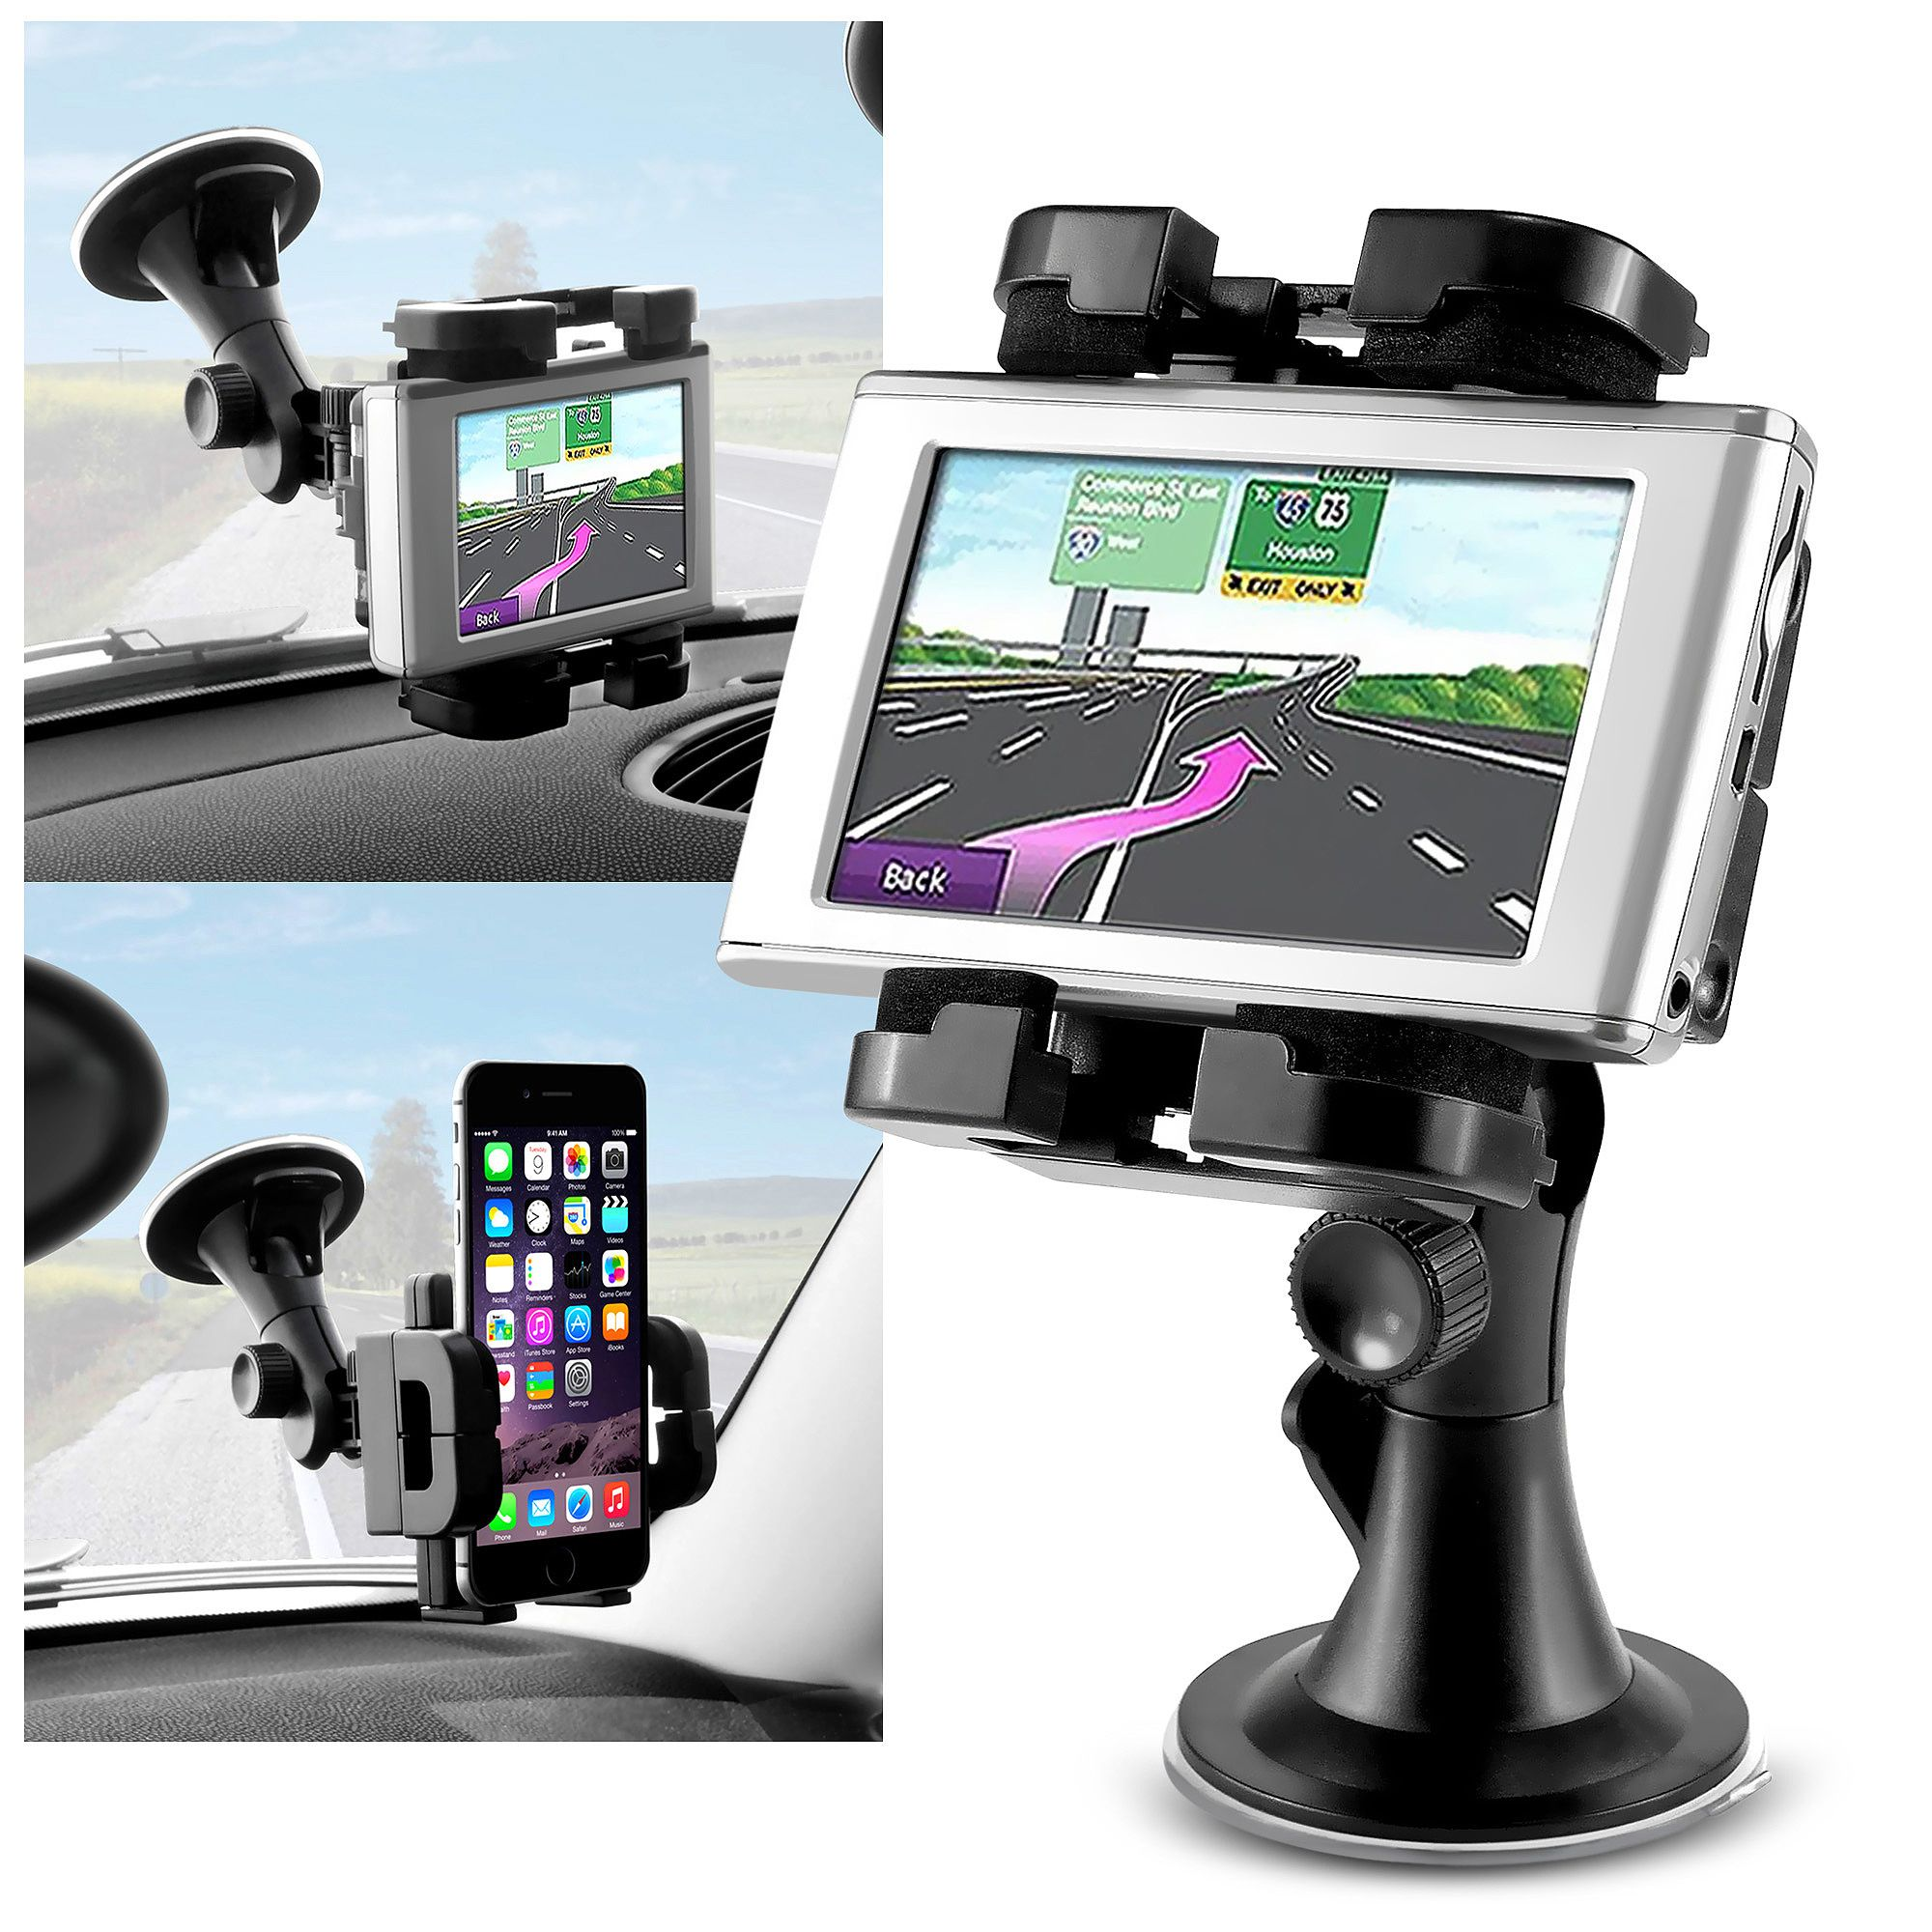 Insten Cell Phone Windshield Dashboard Mount Window Holder Stand Suction Cup Universal for iPhone XS X 8 7 6S 6 Plus SE iPod Touch Samsung Galaxy Note 8 S9 S9+ S8 S7 S6 LG G6 Aristo K7 Stylo 3 2 V30